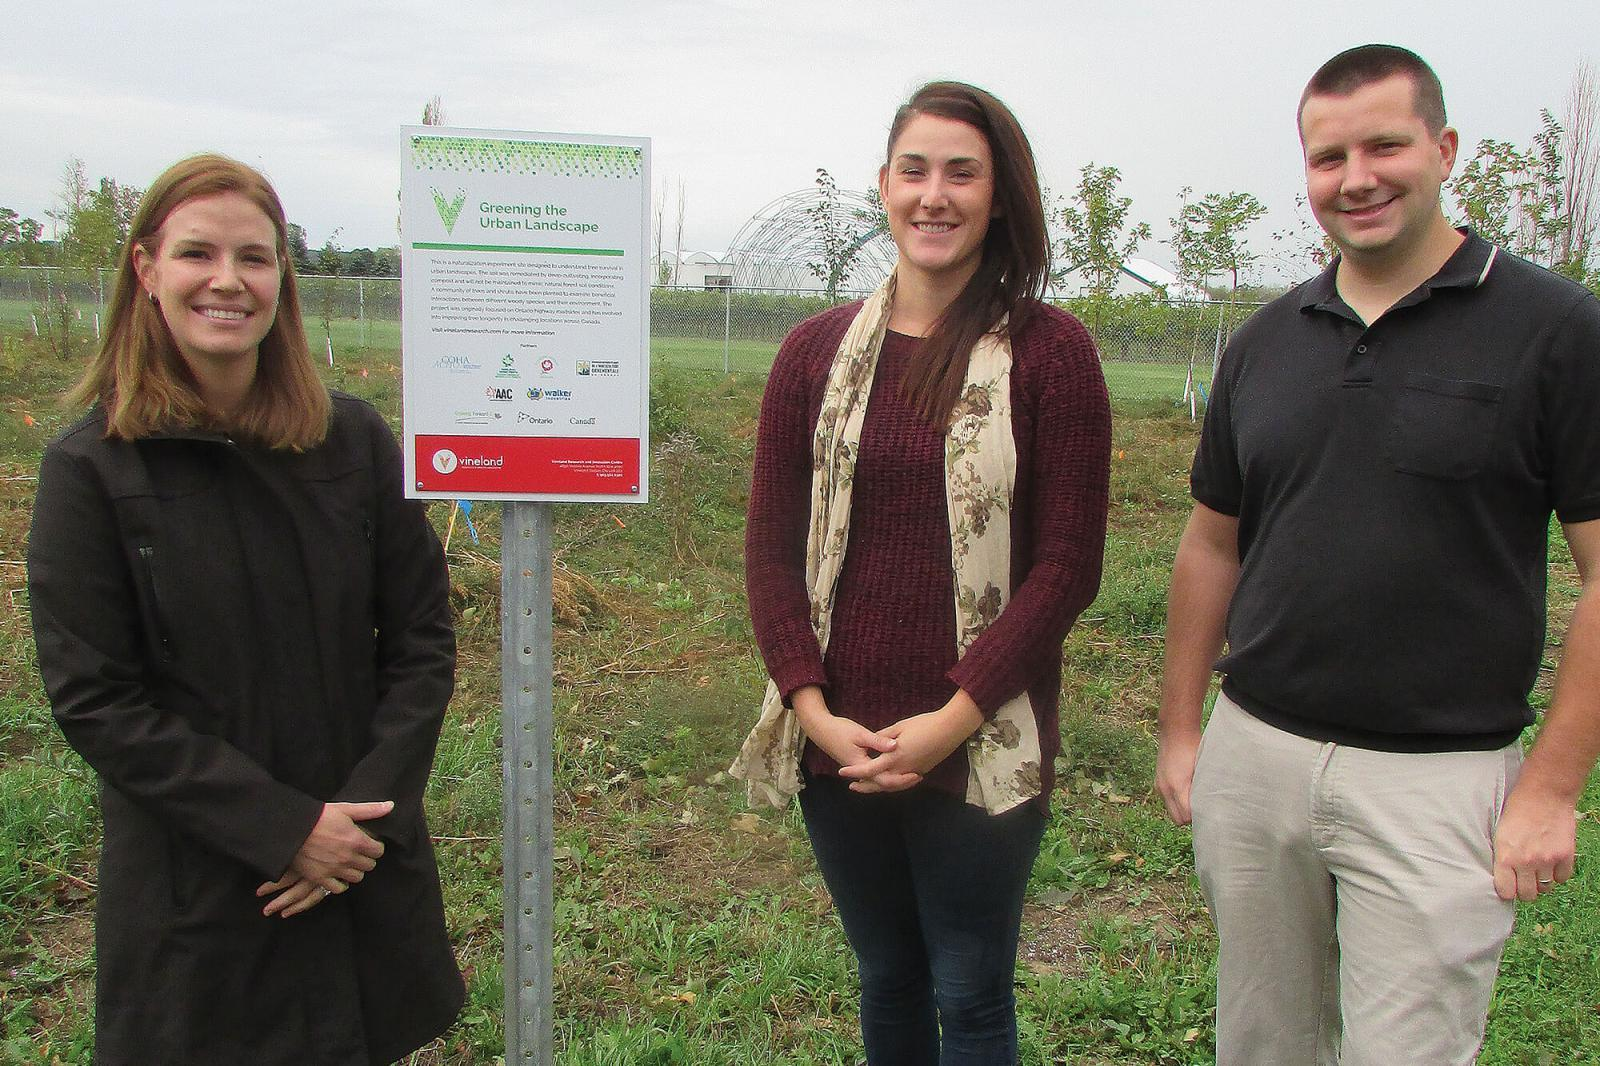 Dr. Darby McGrath, Vineland's Research Scientist, Nursery and Landscape, is joined by her assistants with the highway trees project, Erin Agro, Research Technician, Horticultural Production Systems, and Jason Henry, Research Technician, Nursery and Landscape.